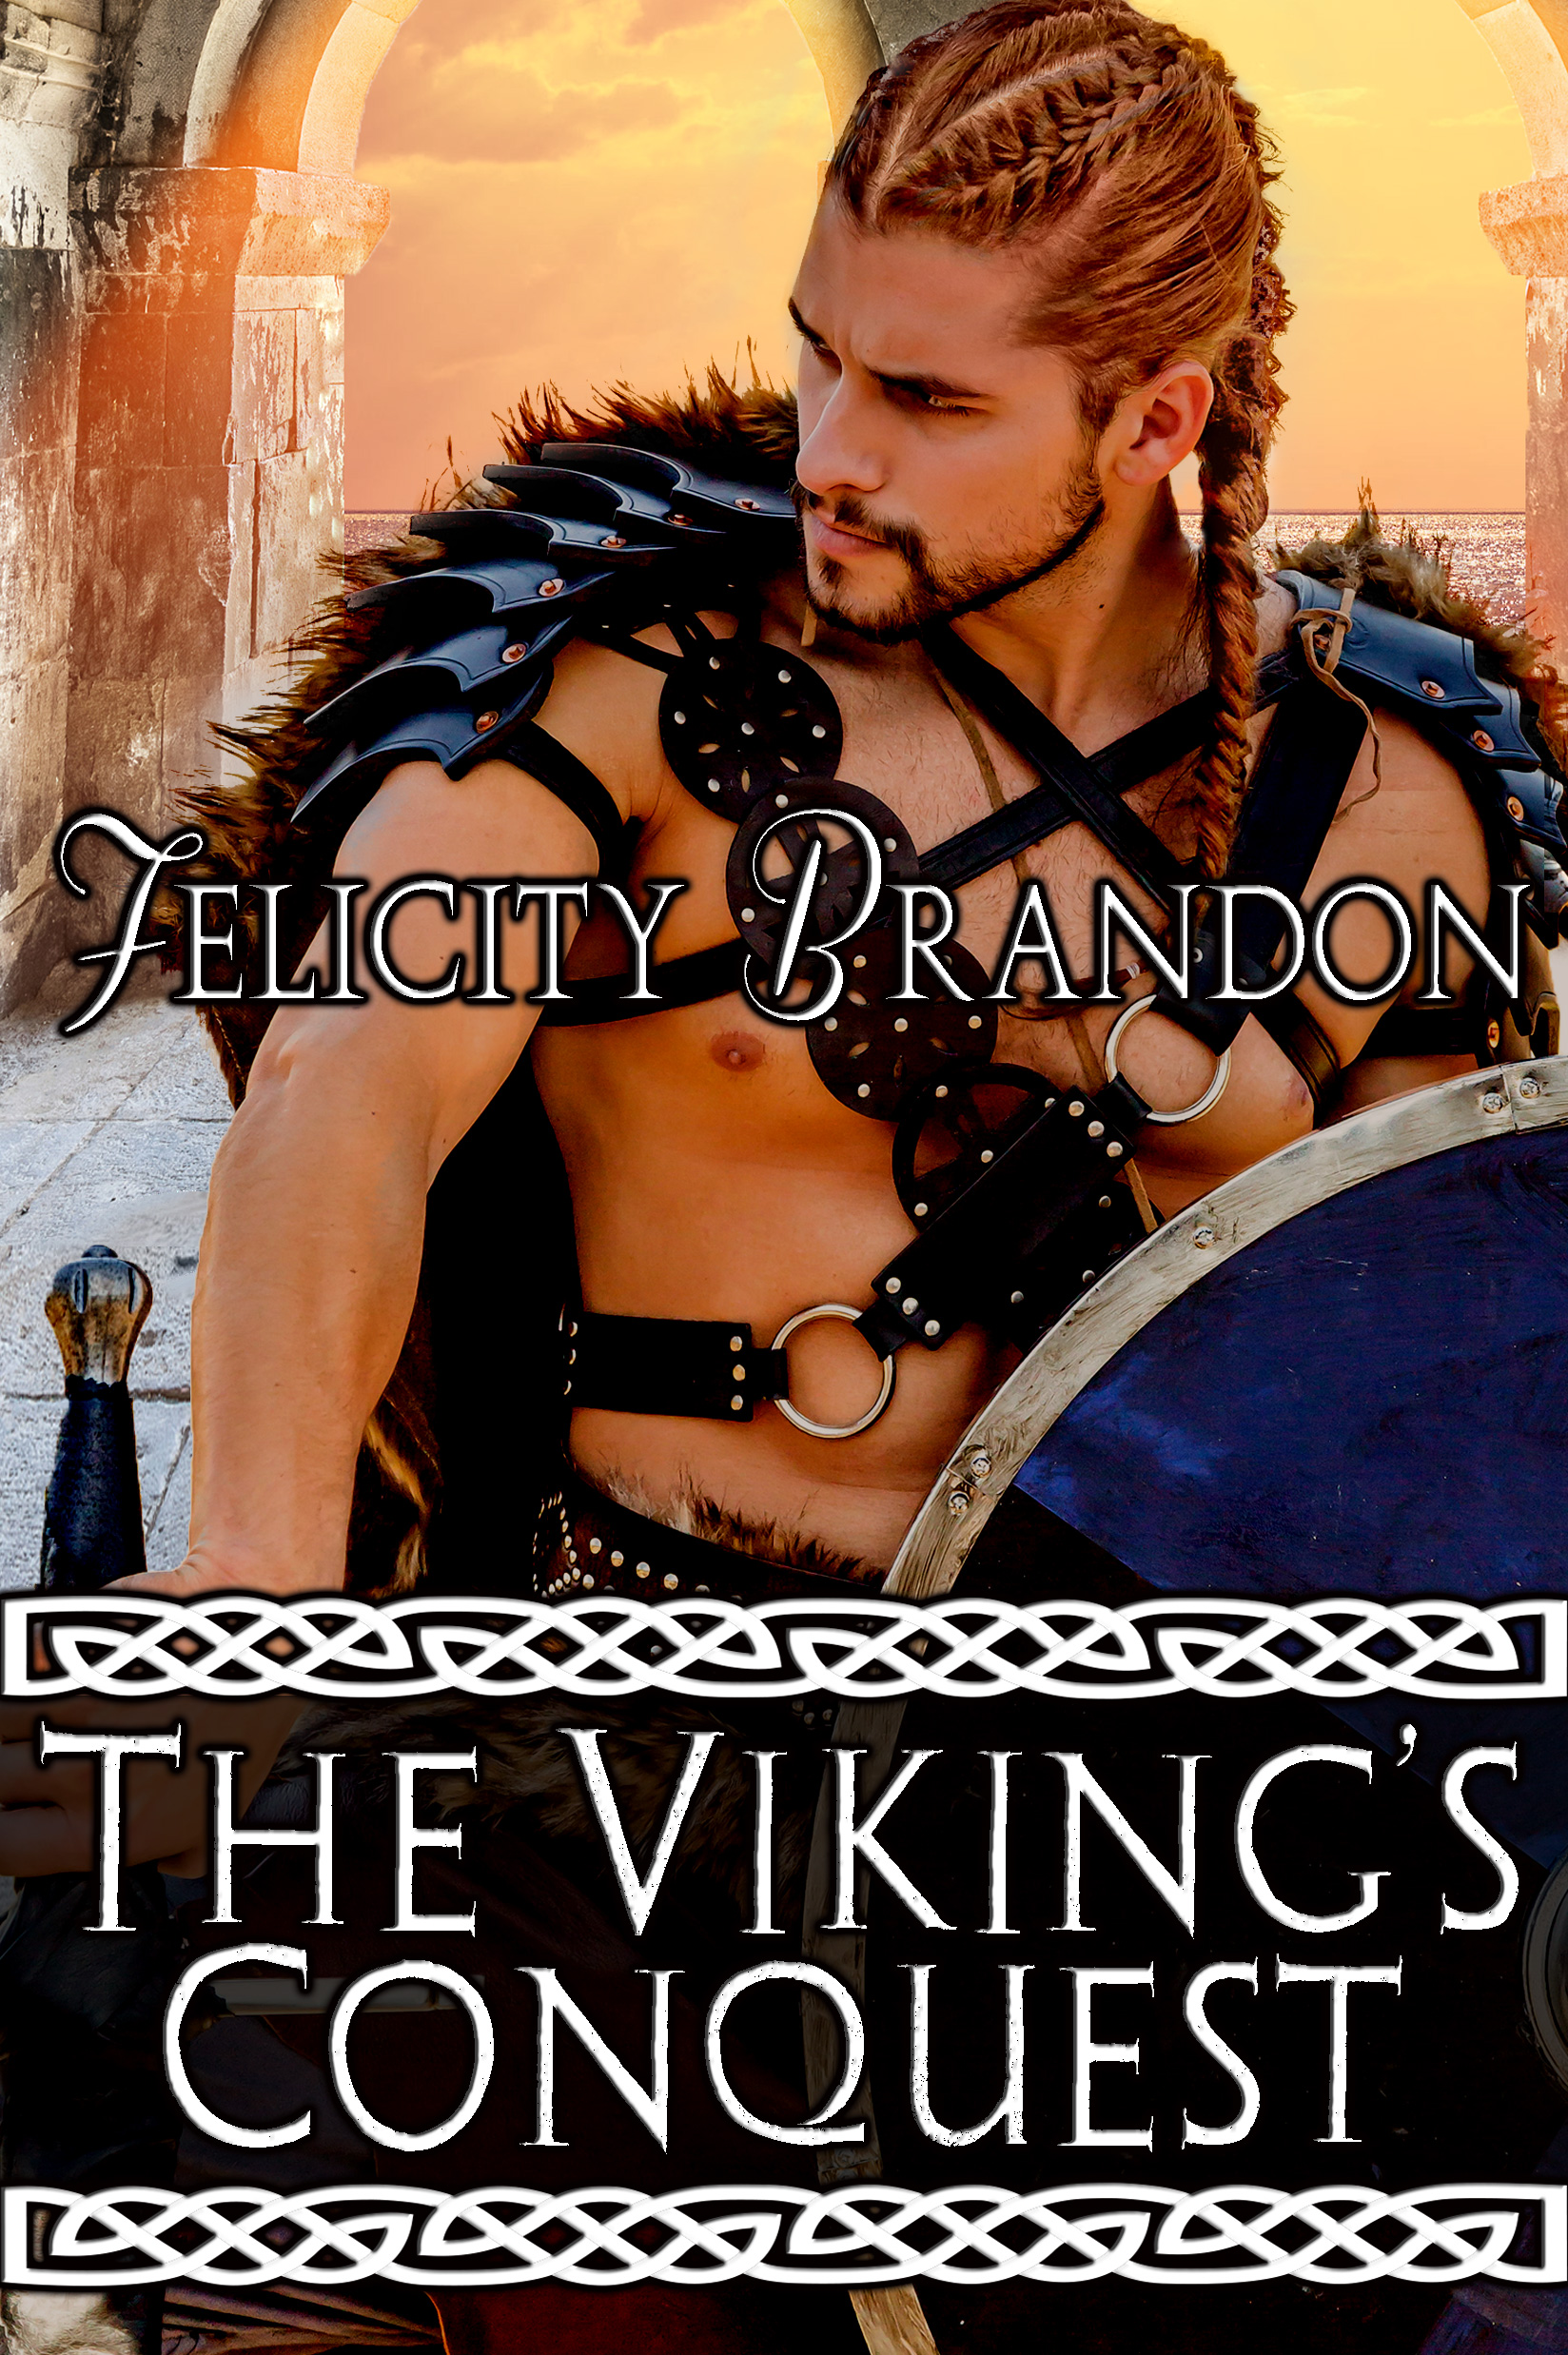 The Viking's Conquest-new and hot from Felicity Brandon